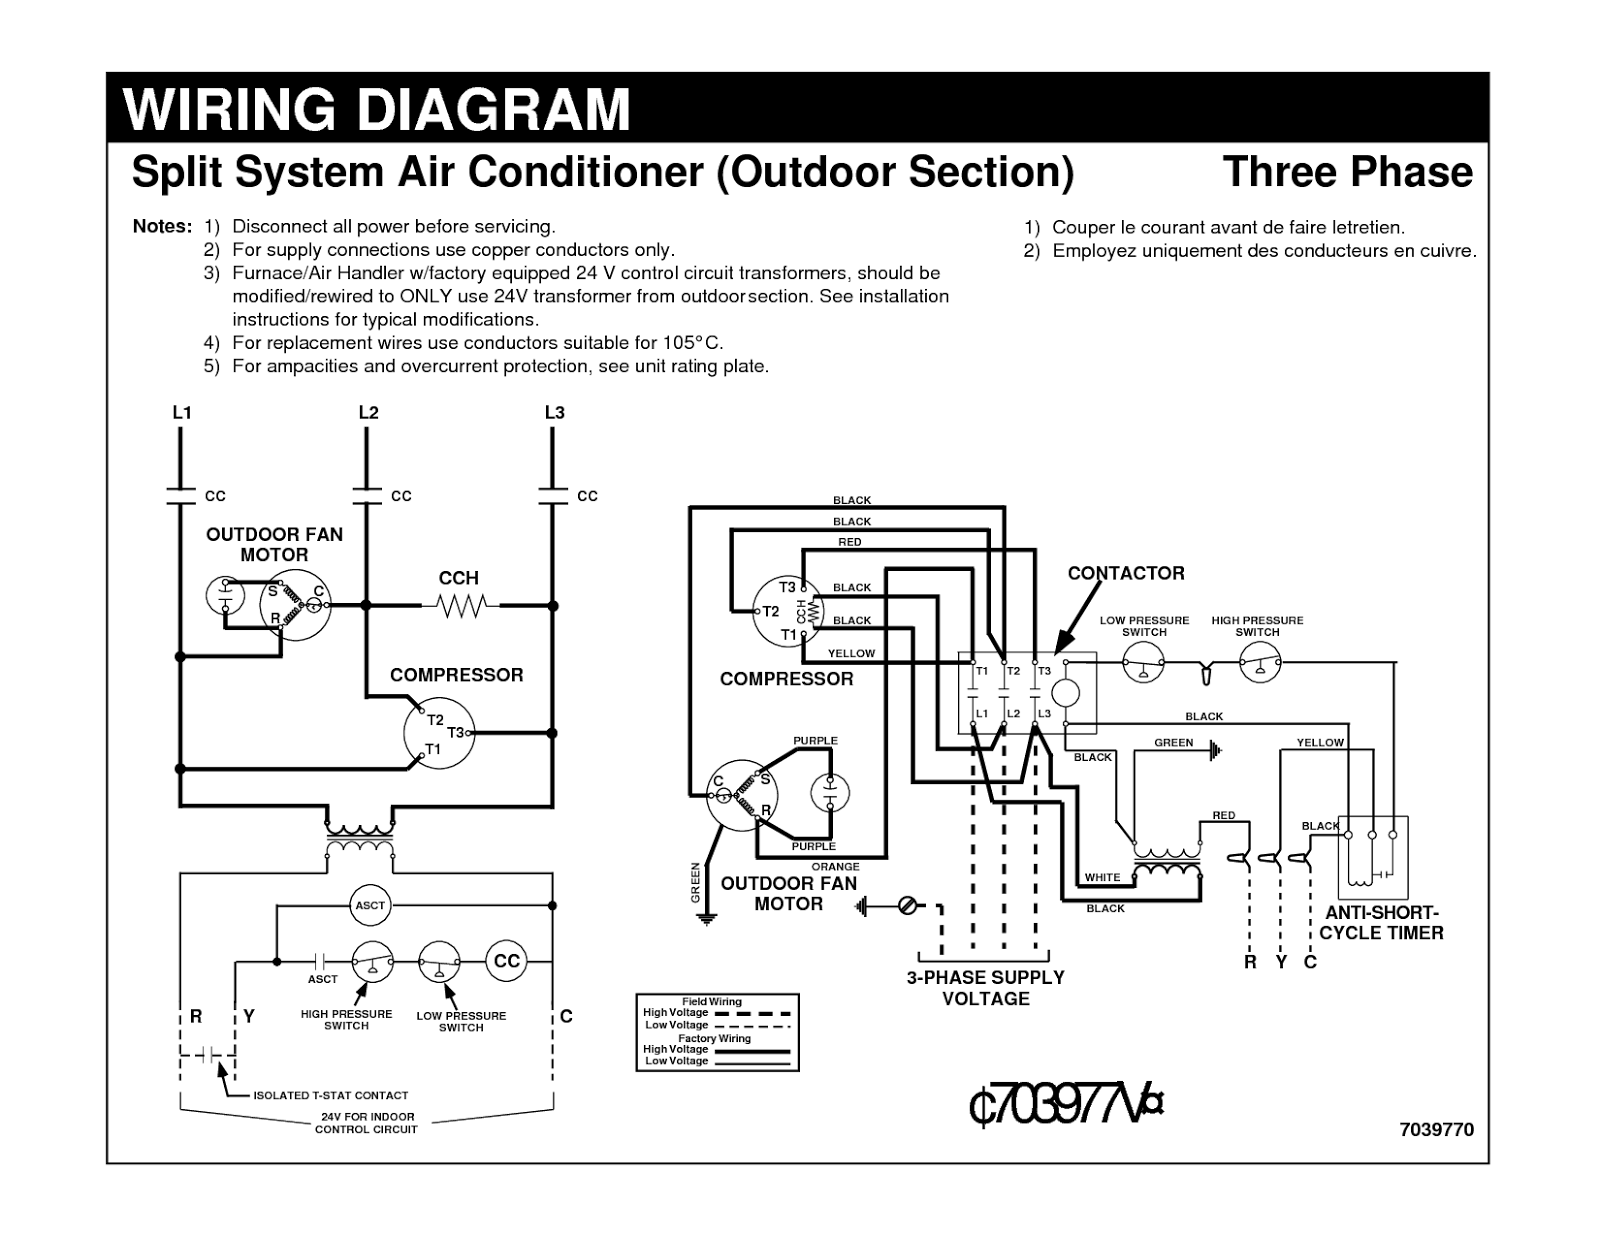 house wiring diagram hvac wiring diagrams rh 27 jennifer retzke de hvac electrical wiring diagram symbols household diagrams and schematics for hvac [ 1600 x 1236 Pixel ]